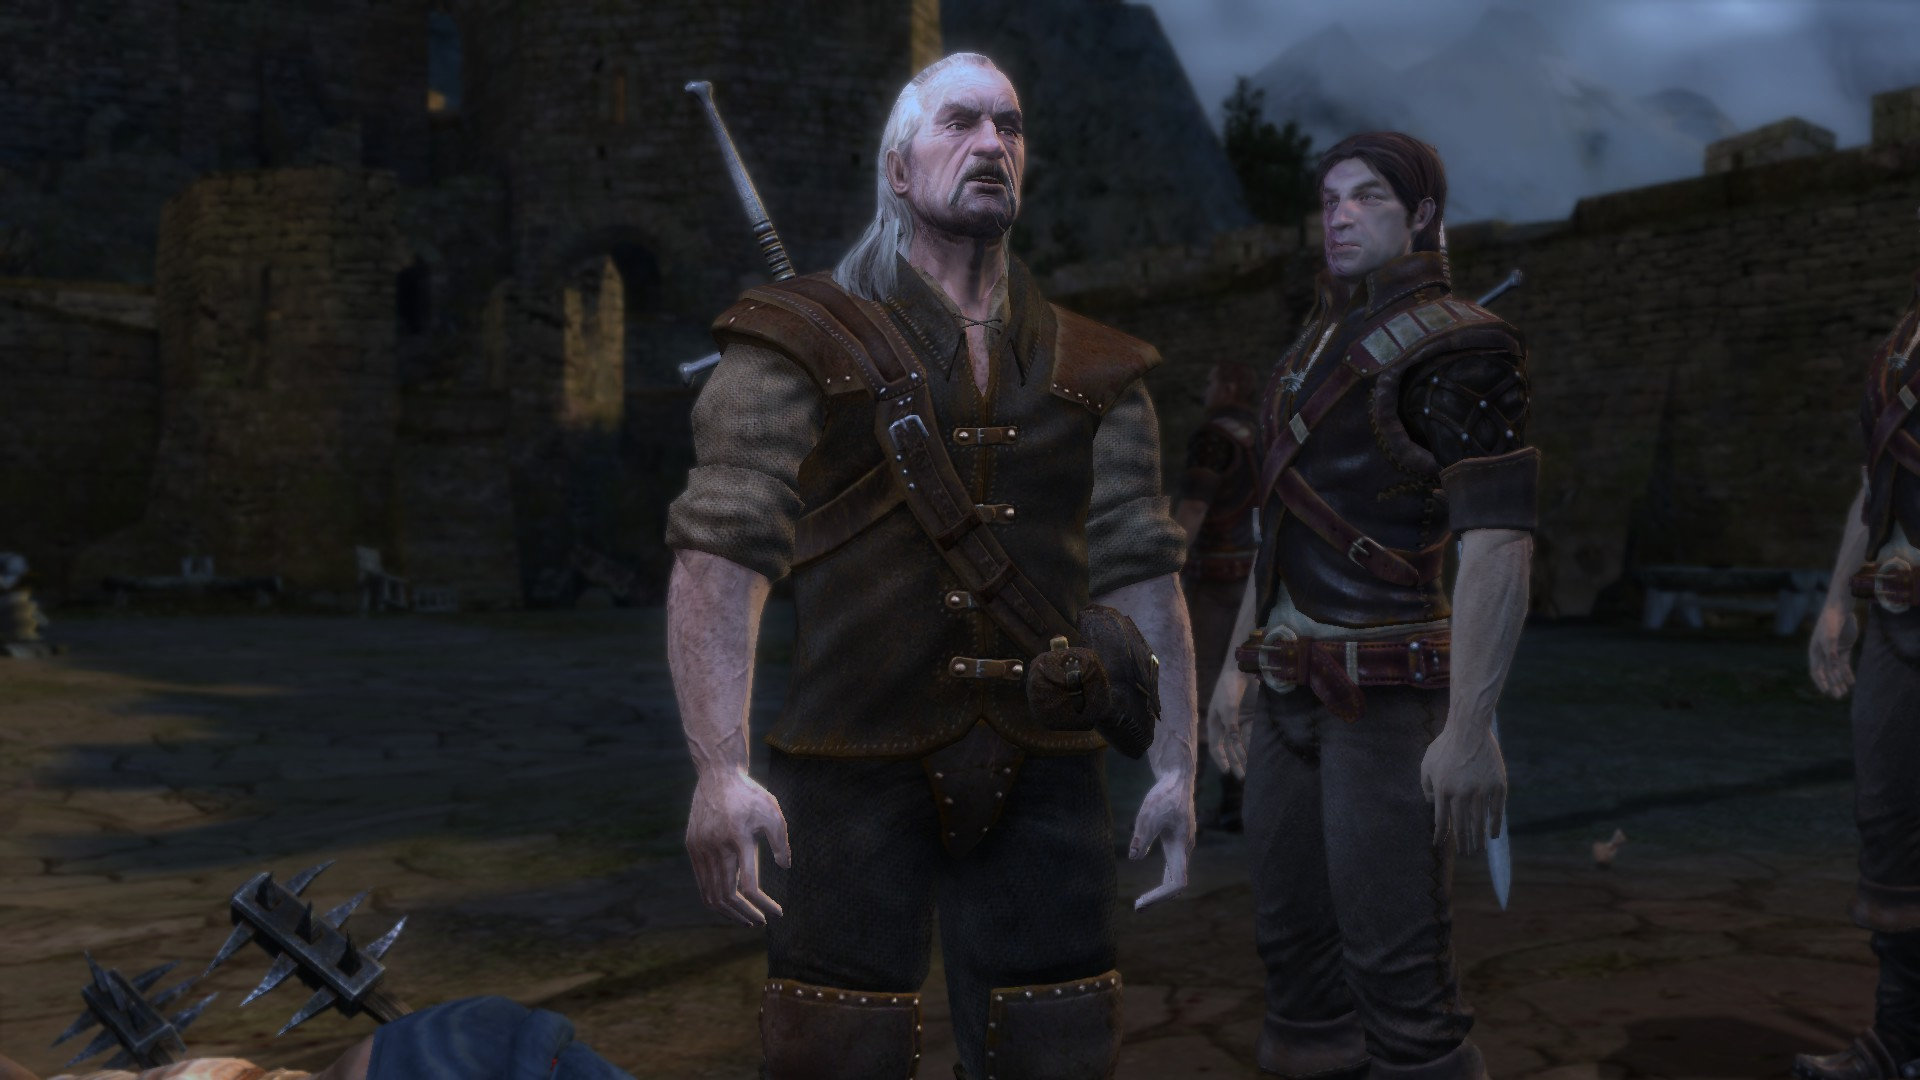 20171028181856_1.jpg - Witcher, the